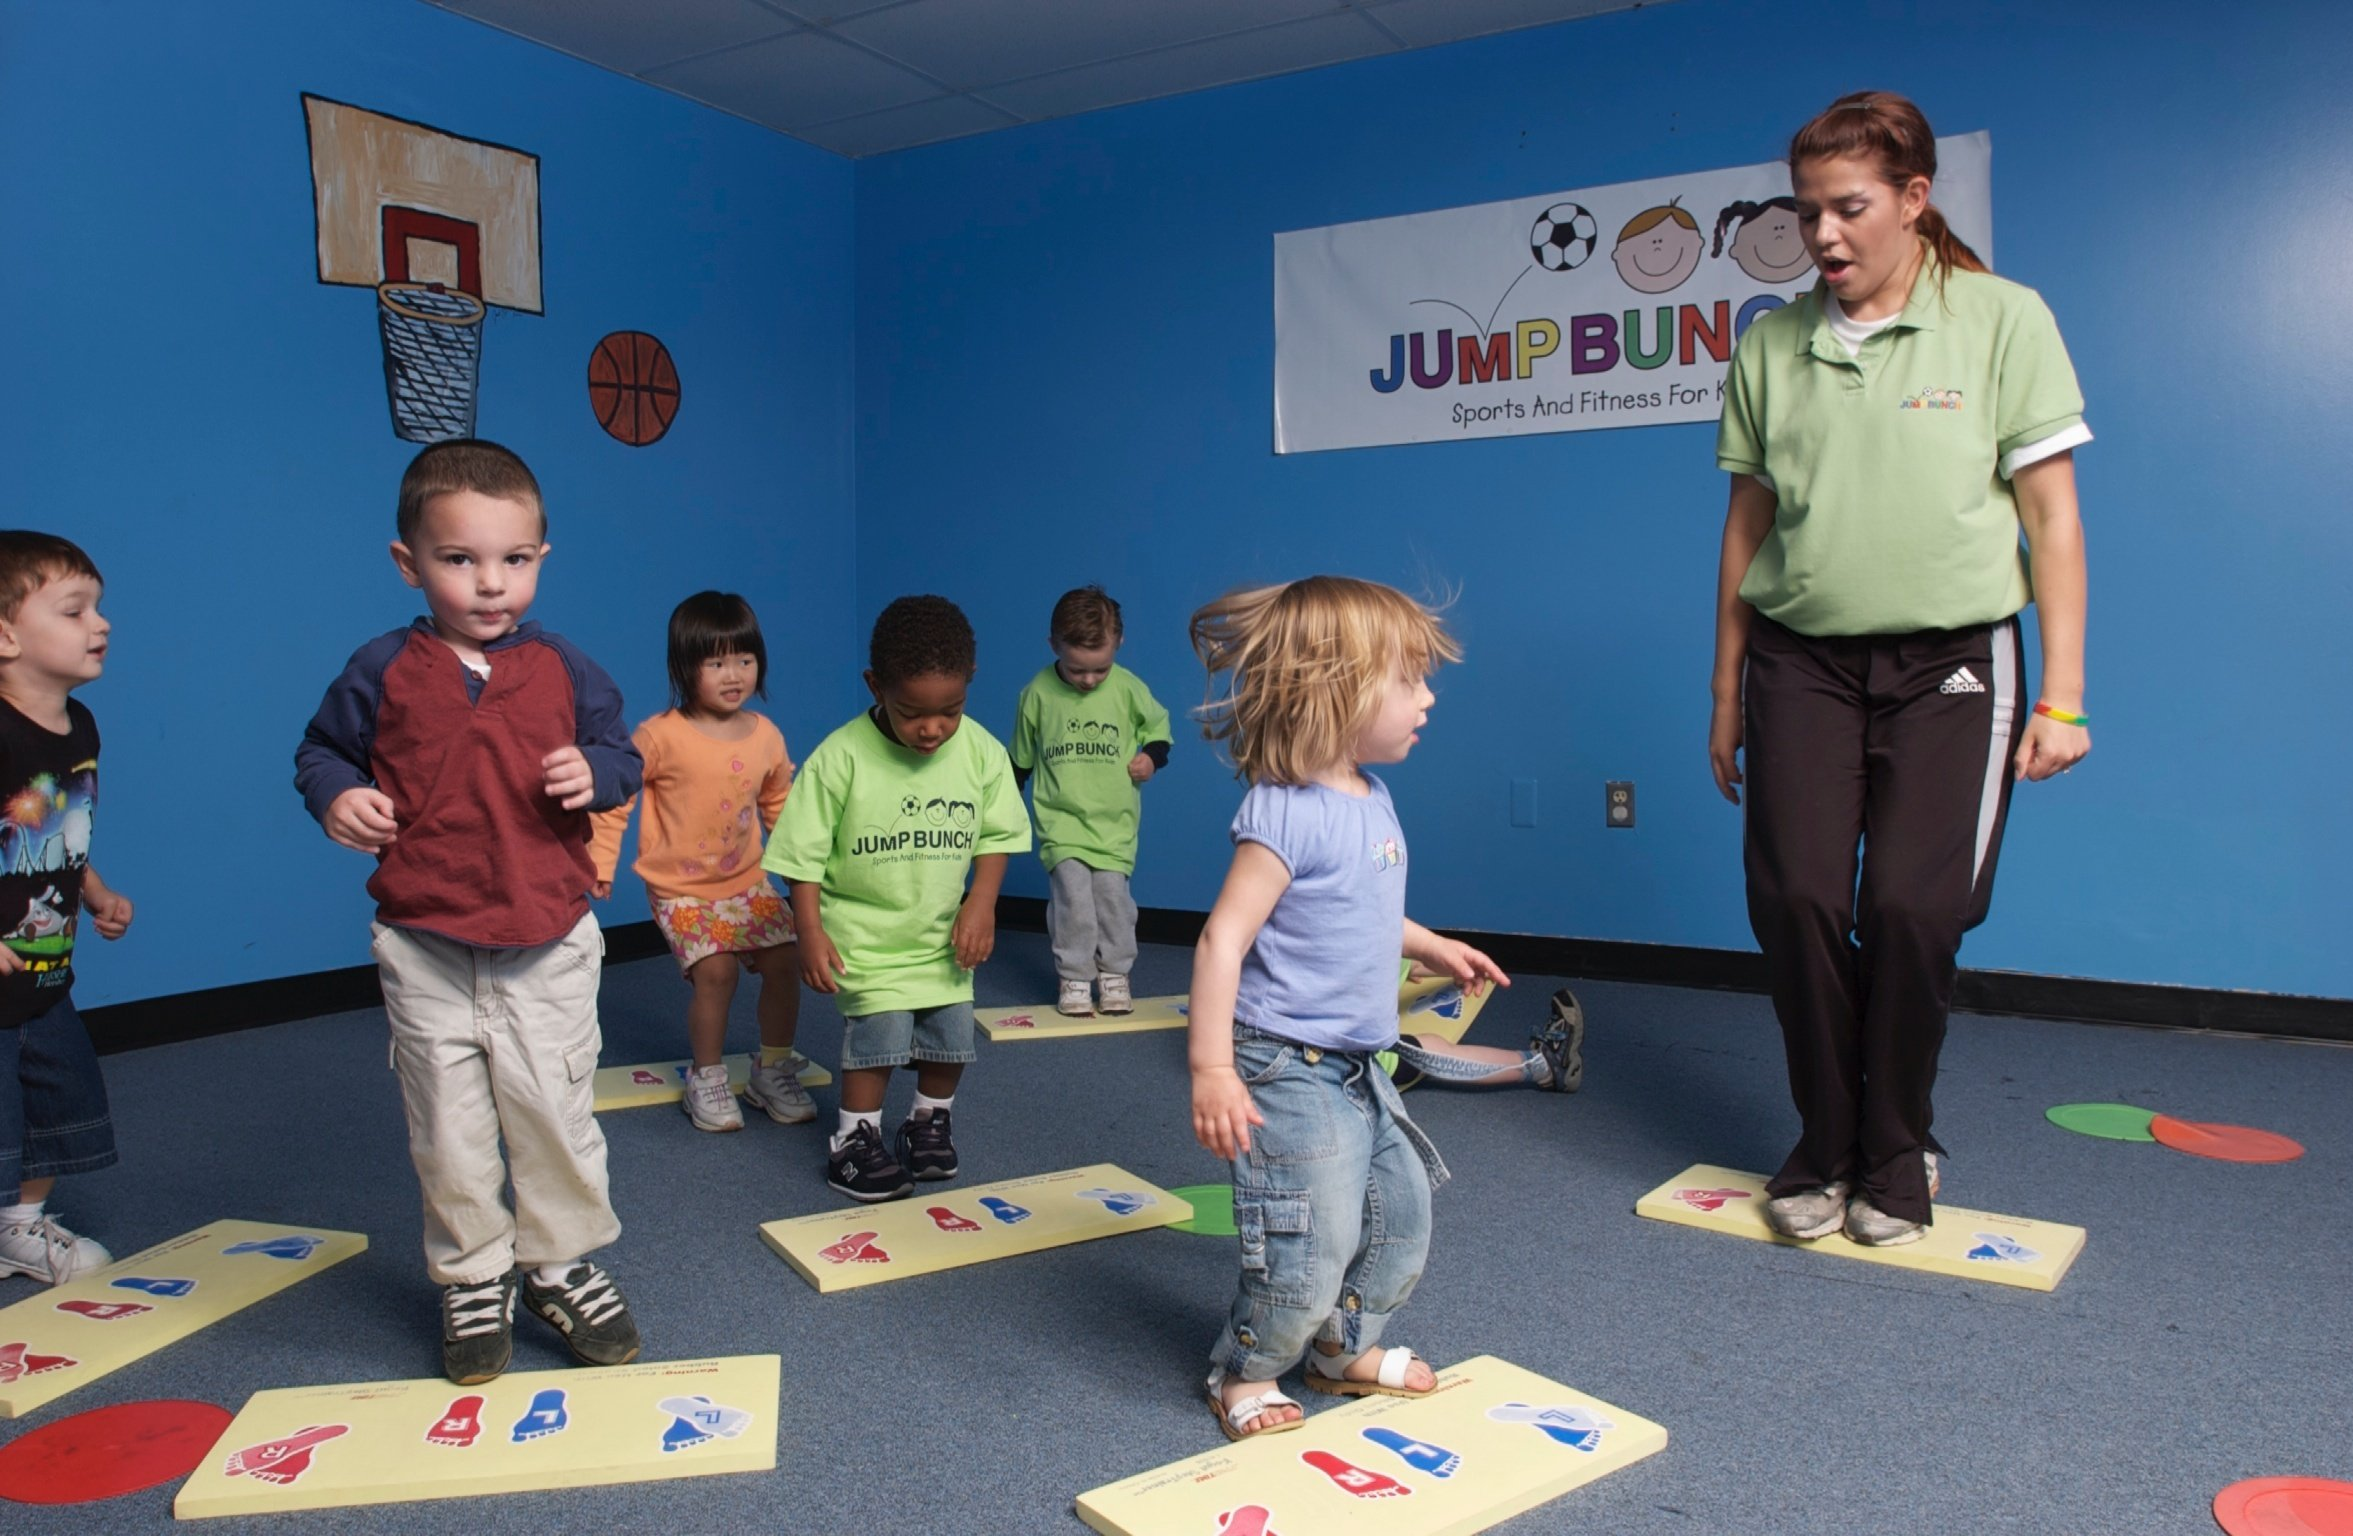 JumpBunch Phoenix Arizona | A Friendly Introduction to Sports and Fitness!